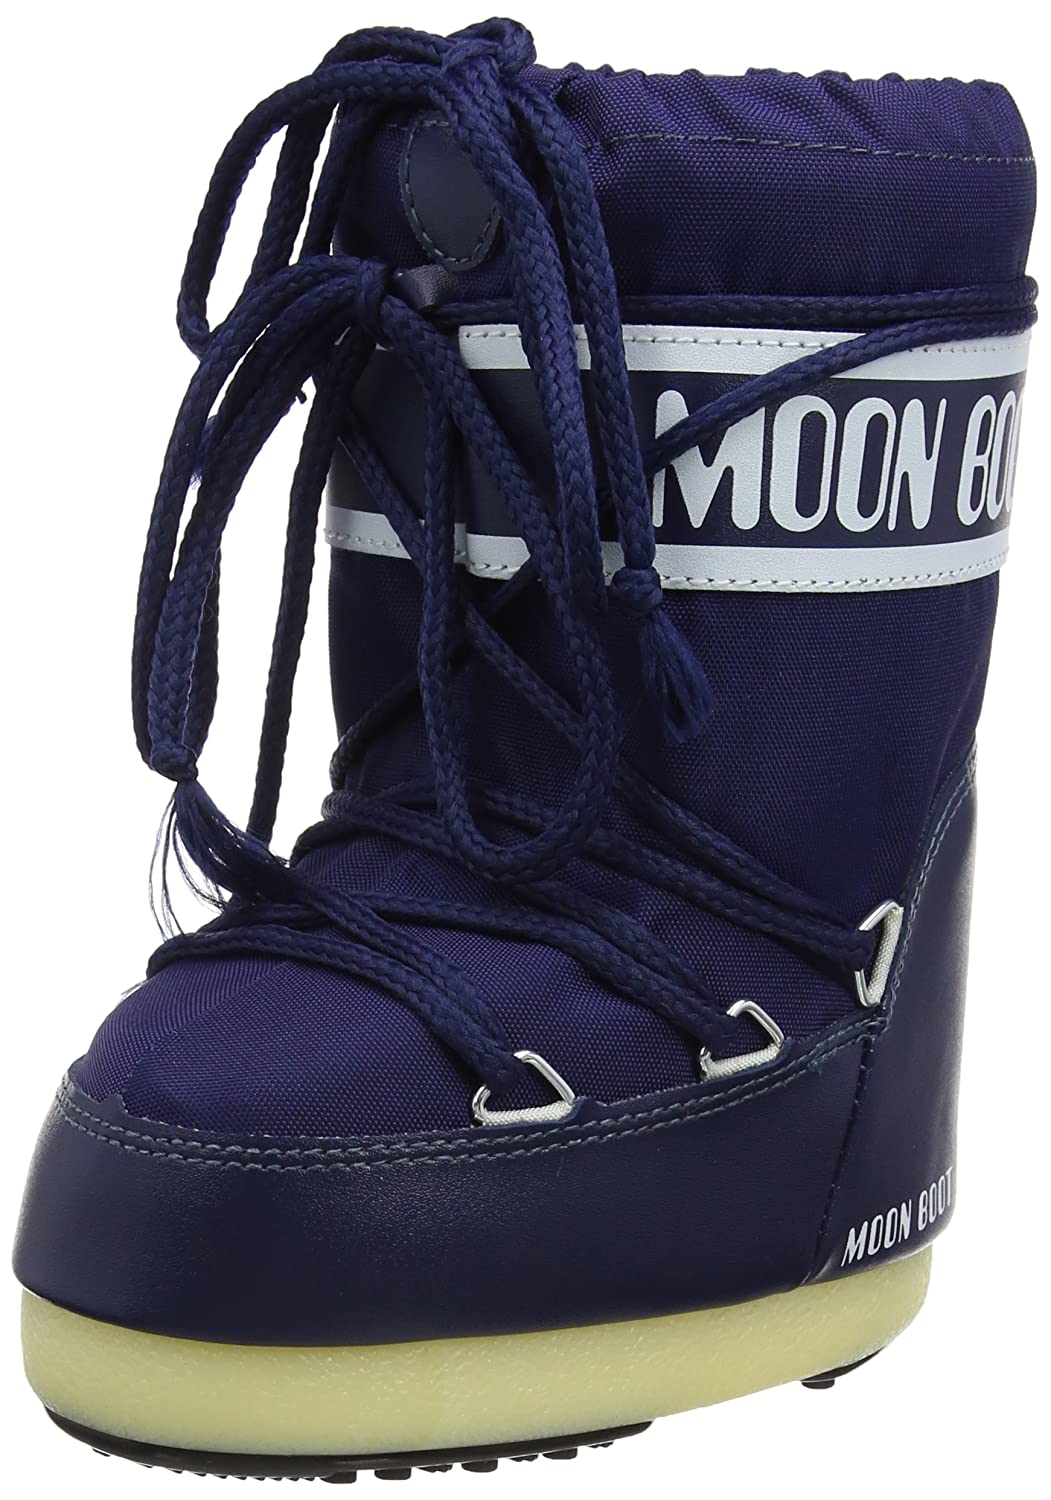 Moon Boot B00KAPG7V6 Nylon 14004400 - Bottes Neige de de Neige - Mixte Enfant Azul (Blau) 33c70d9 - fast-weightloss-diet.space